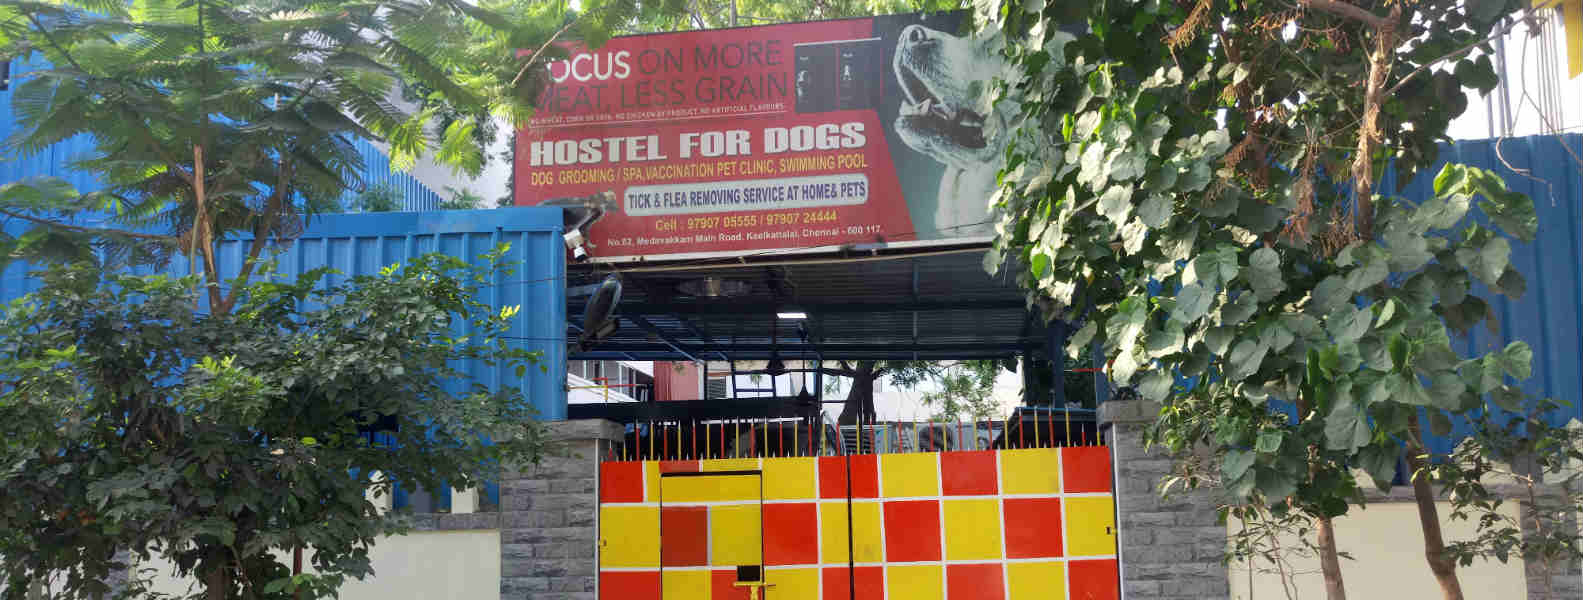 Hostel for dogs